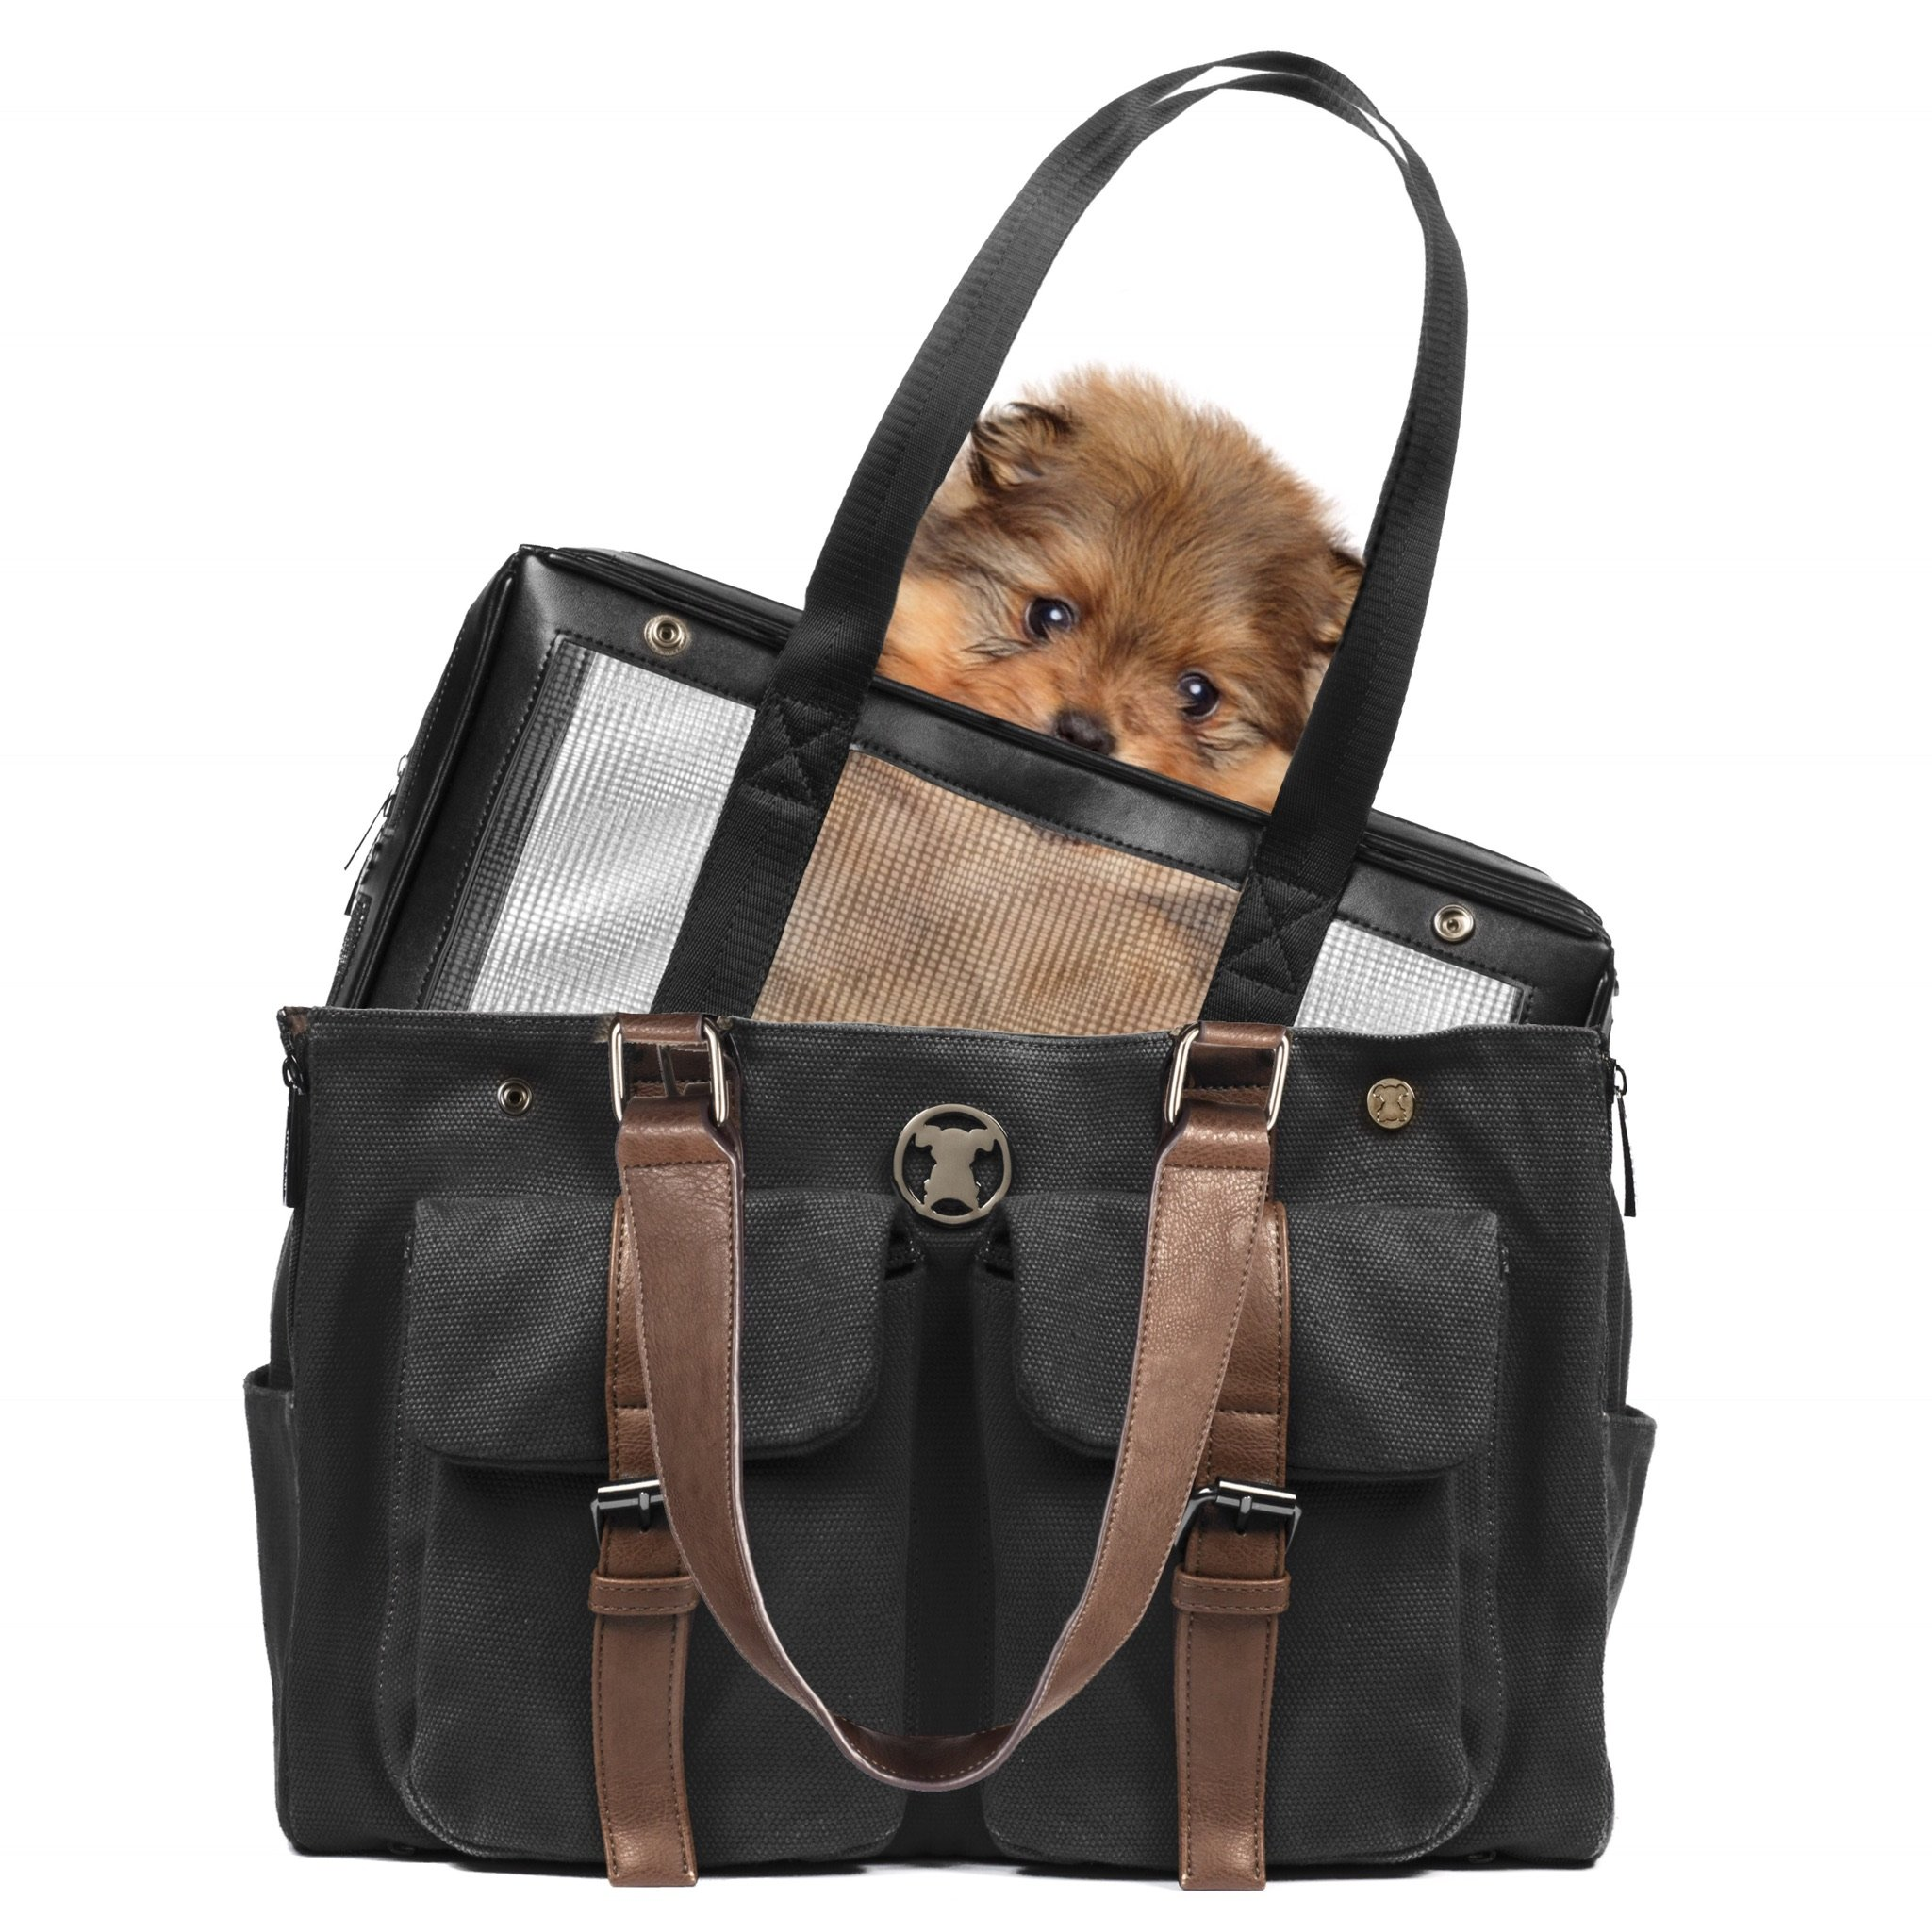 MISO PUP Weekend Black Canvas Interchangeable Airline Approved Pet Carrier Combo with Pockets for Small Dogs (Pet Carrier Base & Shell Tote) by MISO PUP